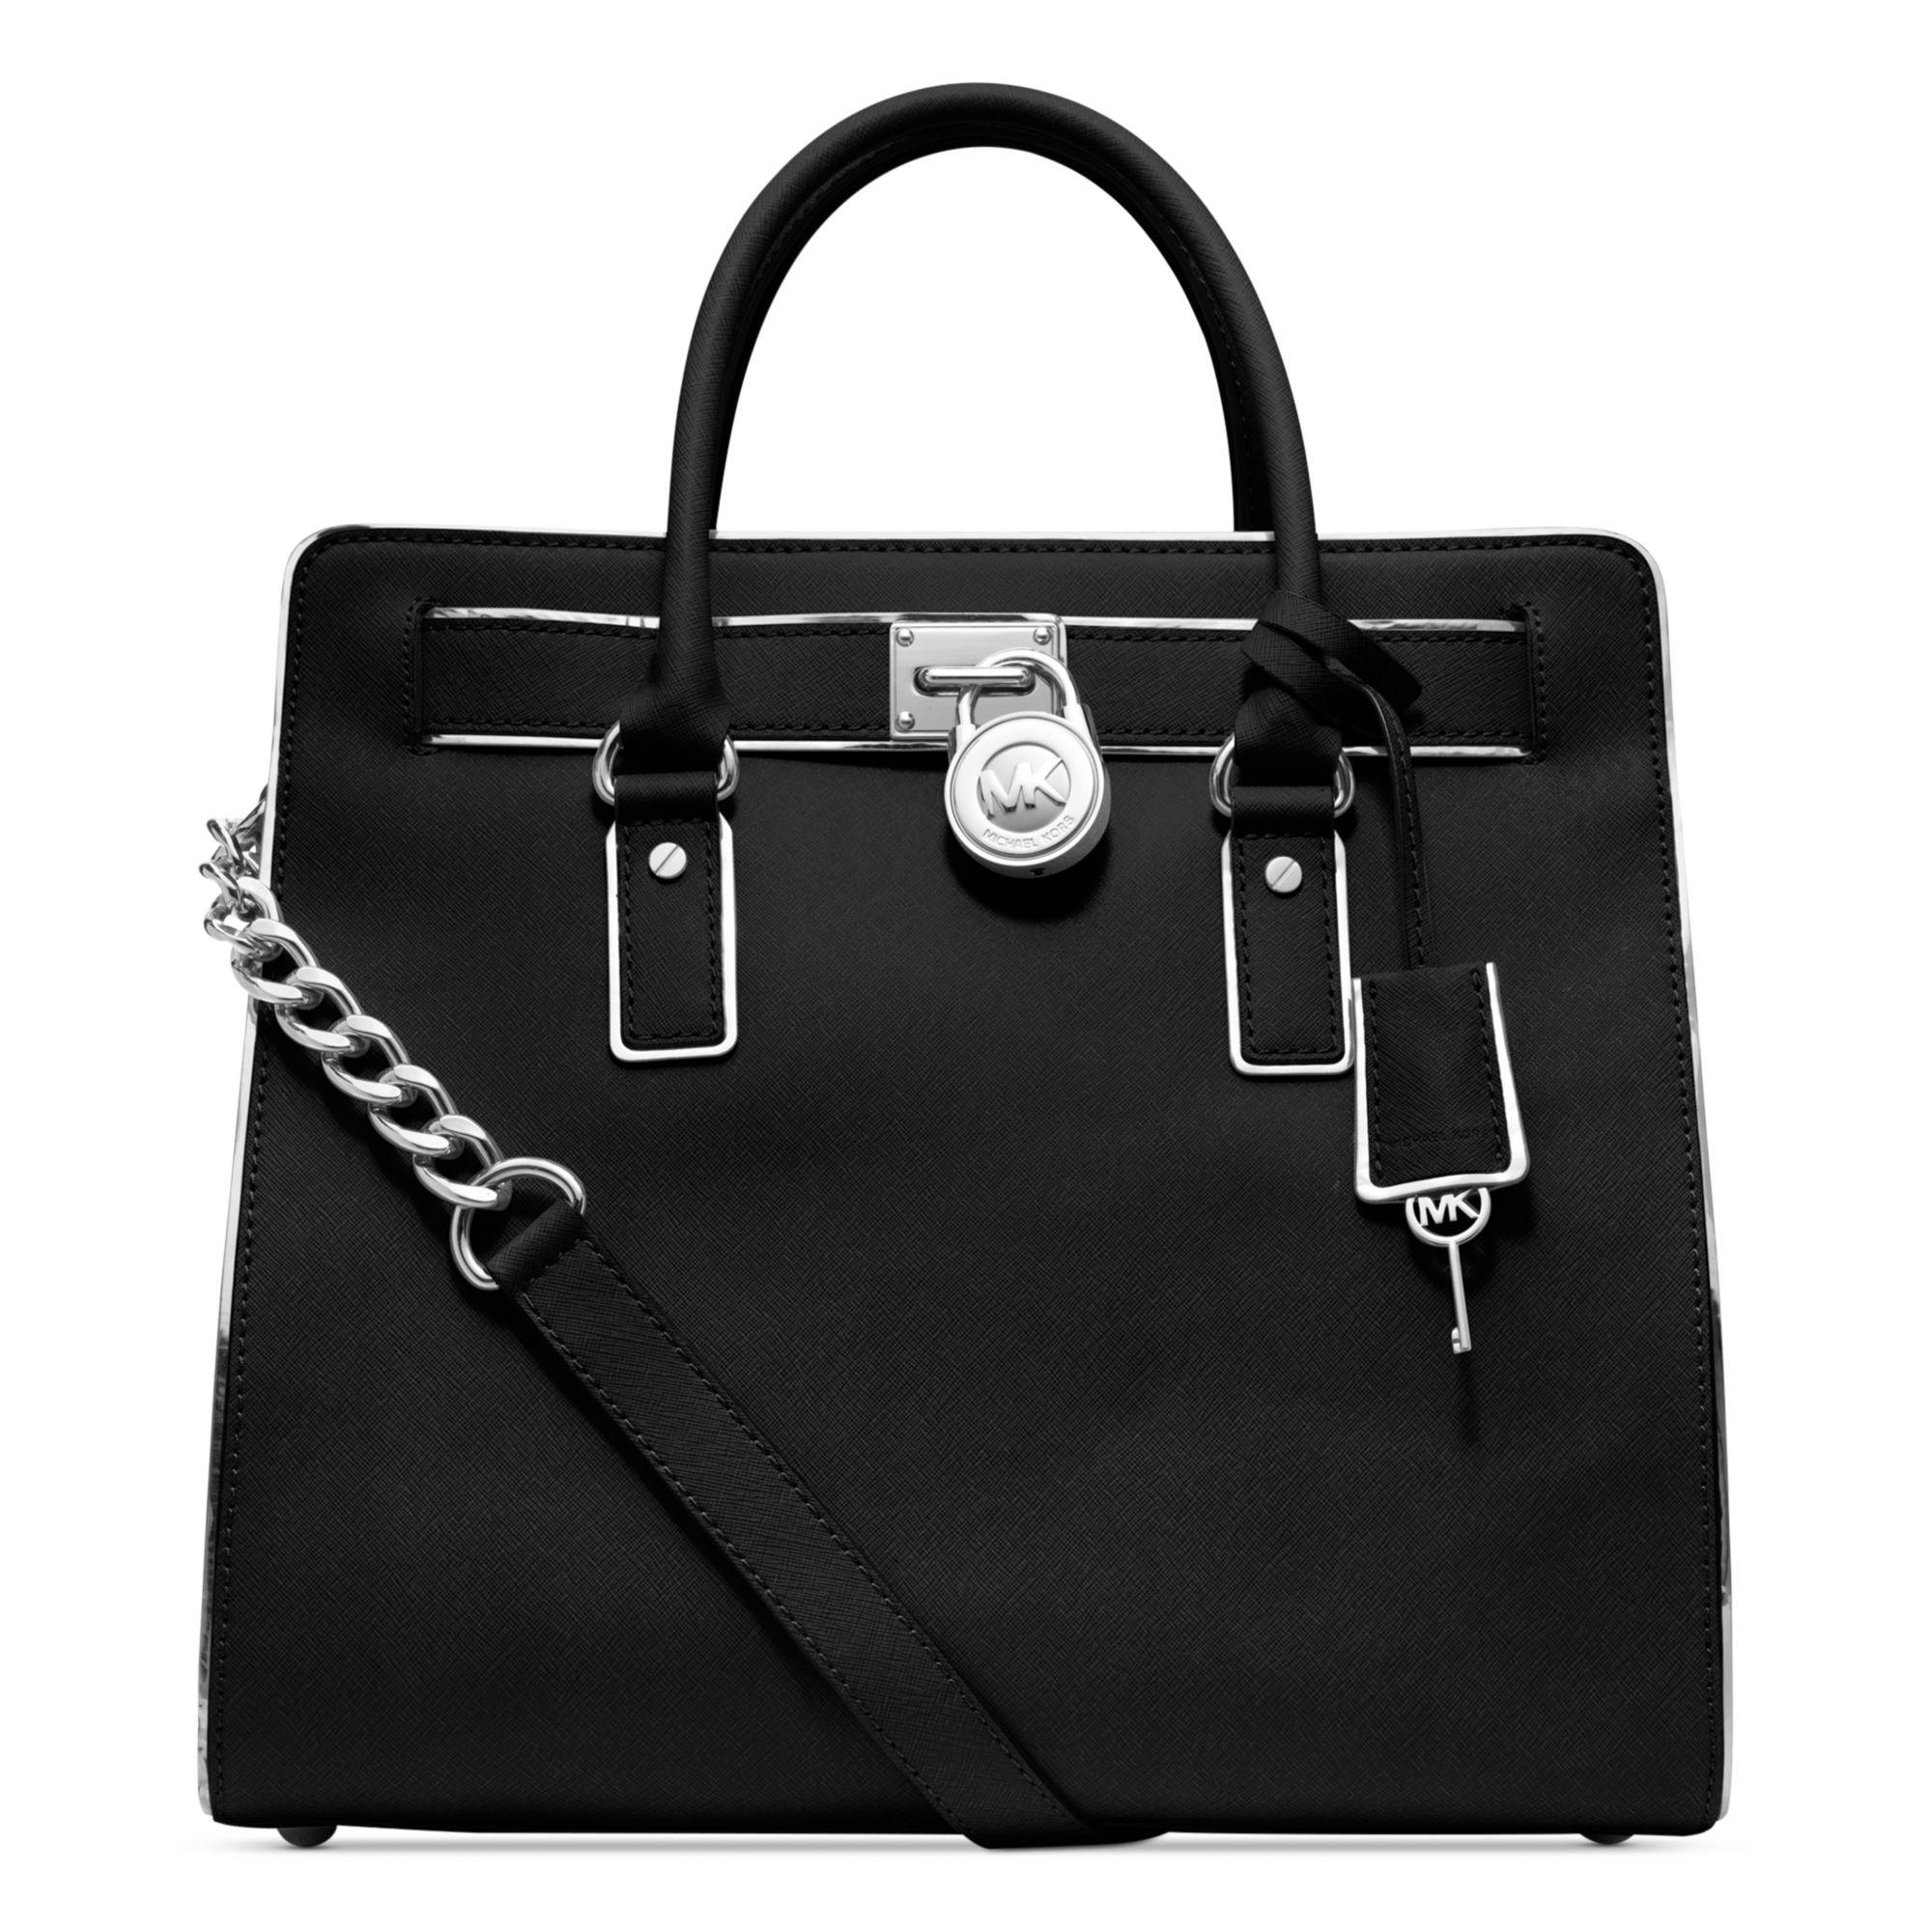 3f623ceb05d6 ... satchel north south convertible tote in black f66f4 6742c where to buy michael  kors ellis lg satchel skyna ns leather crossbody bag 35h7ge0s3t handbag ...